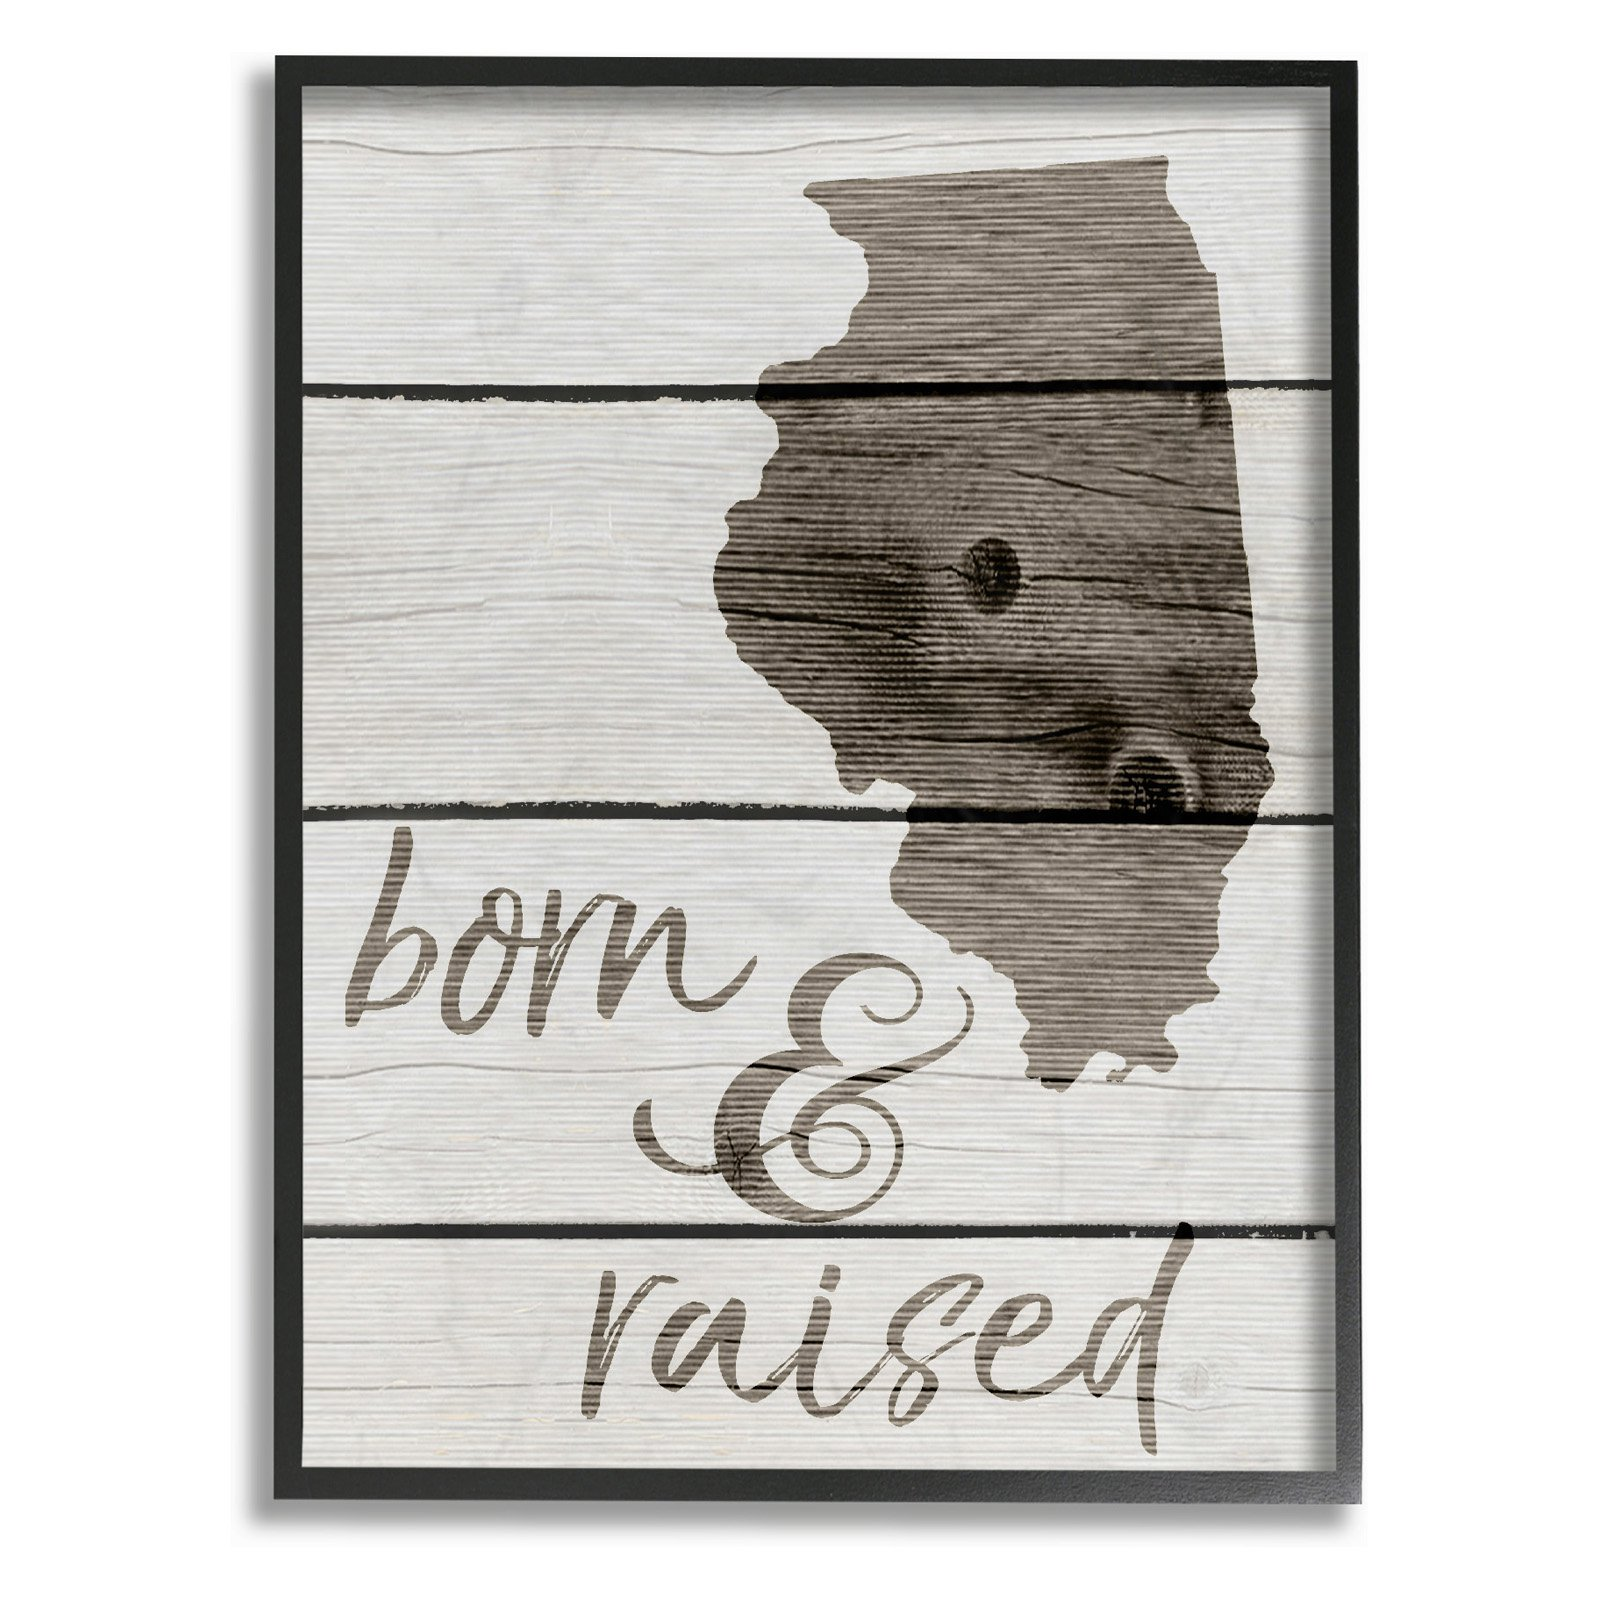 The Stupell Home Decor Collection Born And Raised Illinois Framed Giclee Texturized Art, 11 x 1.5 x 14